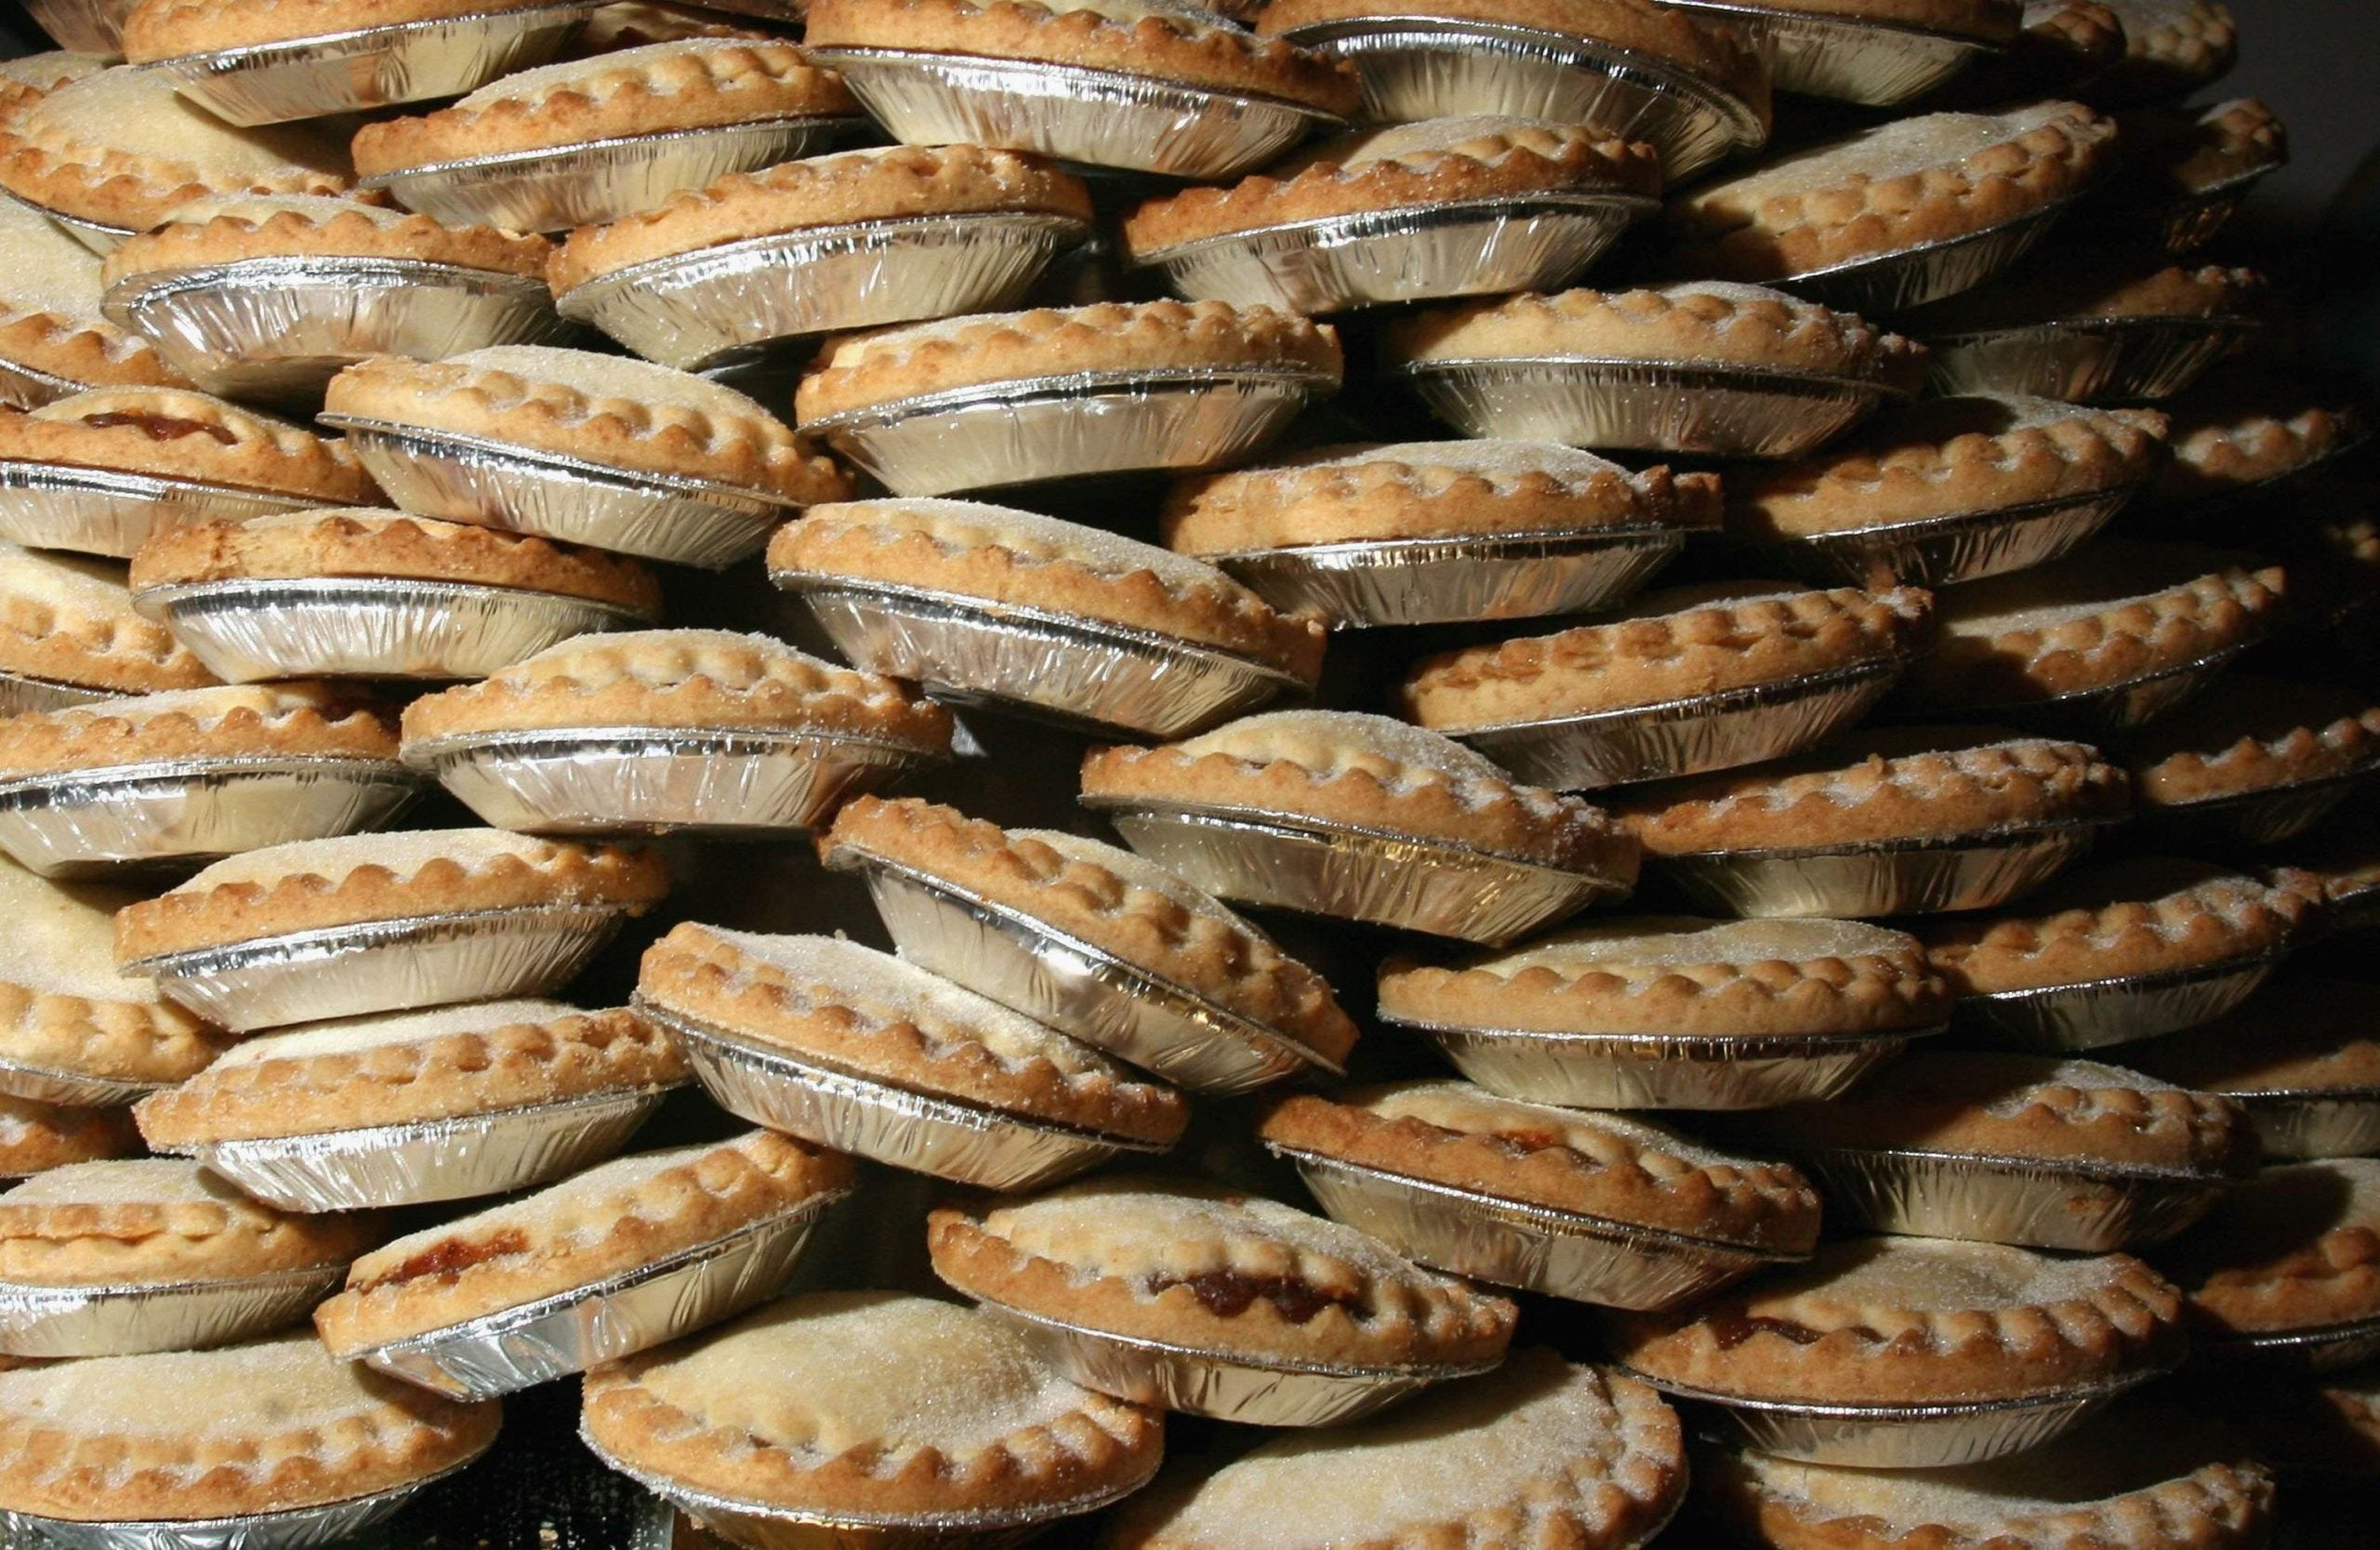 We all eat mince pies at Christmas – but does anyone actually like them?